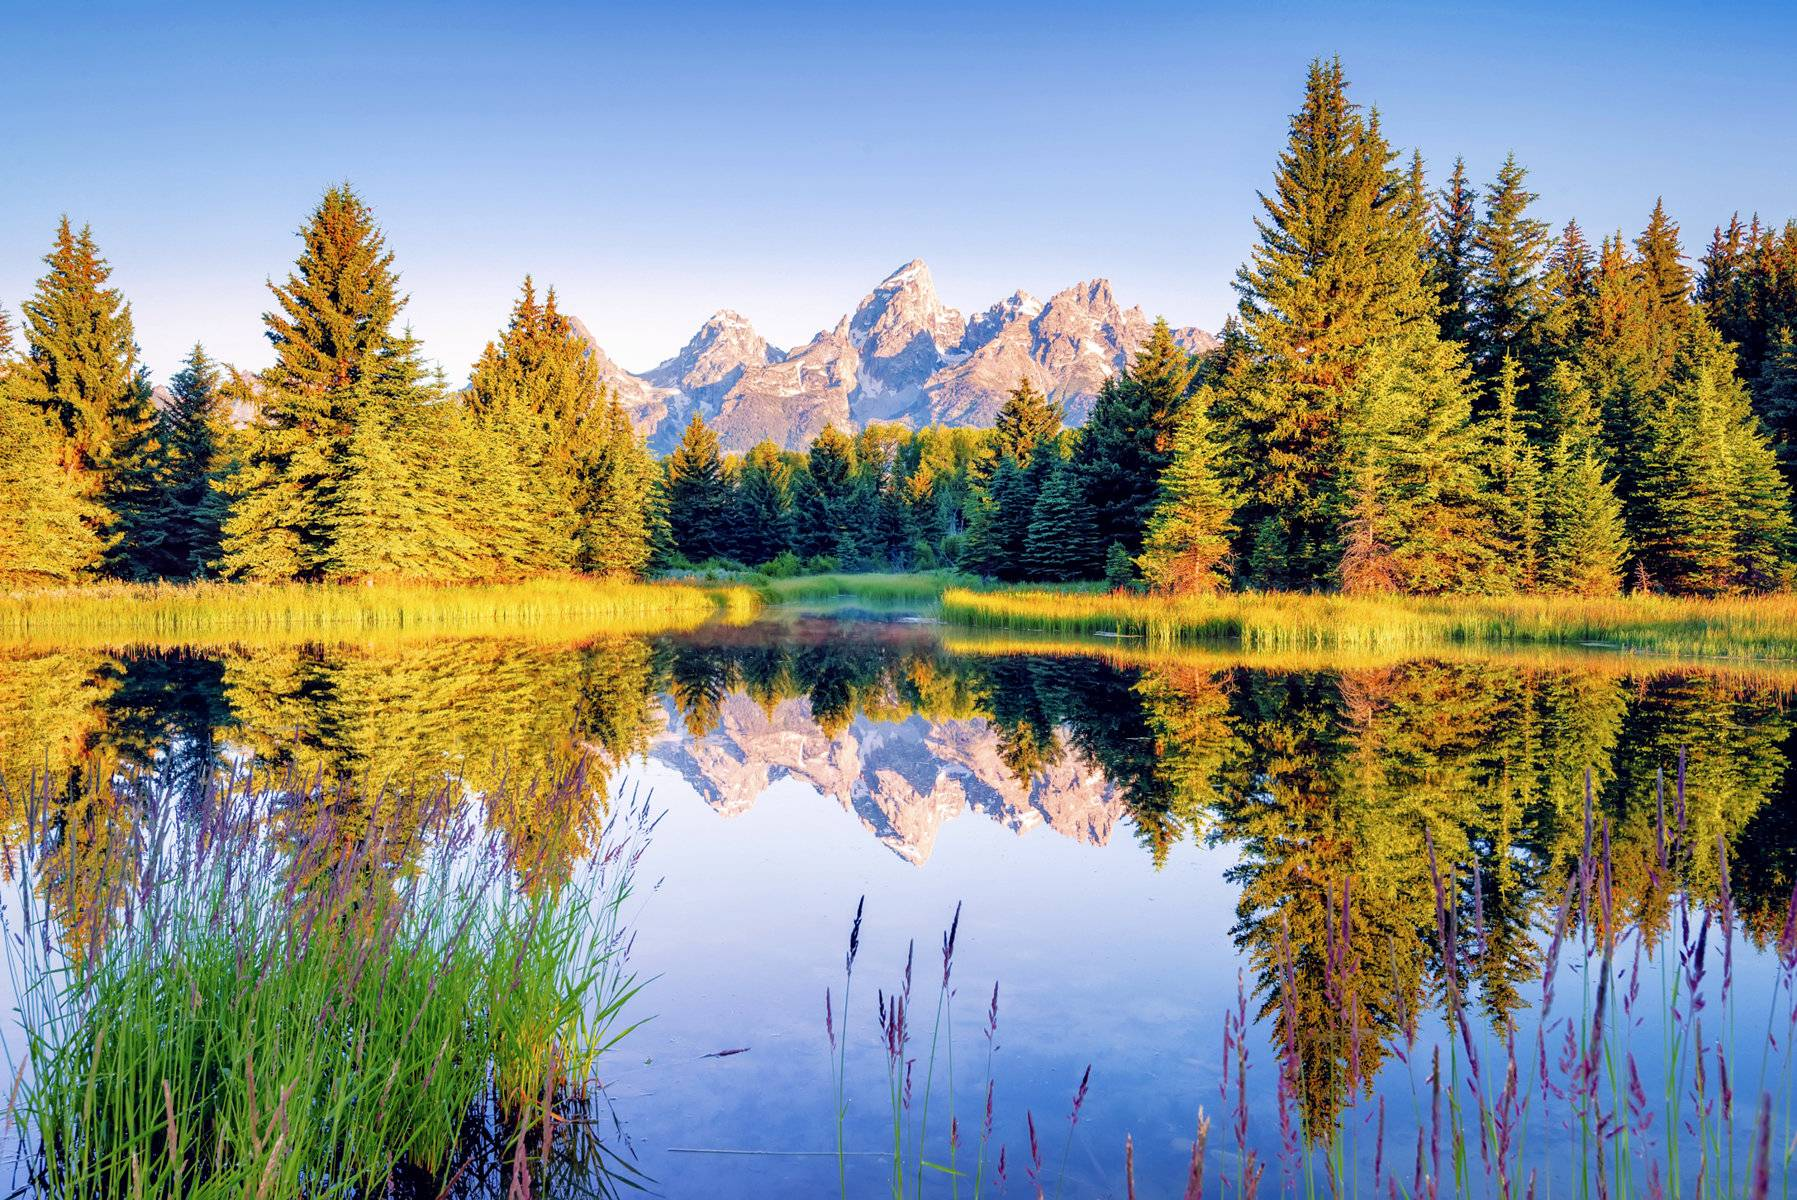 15-Day Rocky Mountain Frontiers Tour with Yellowstone and Grand Canyon National Park from Denver